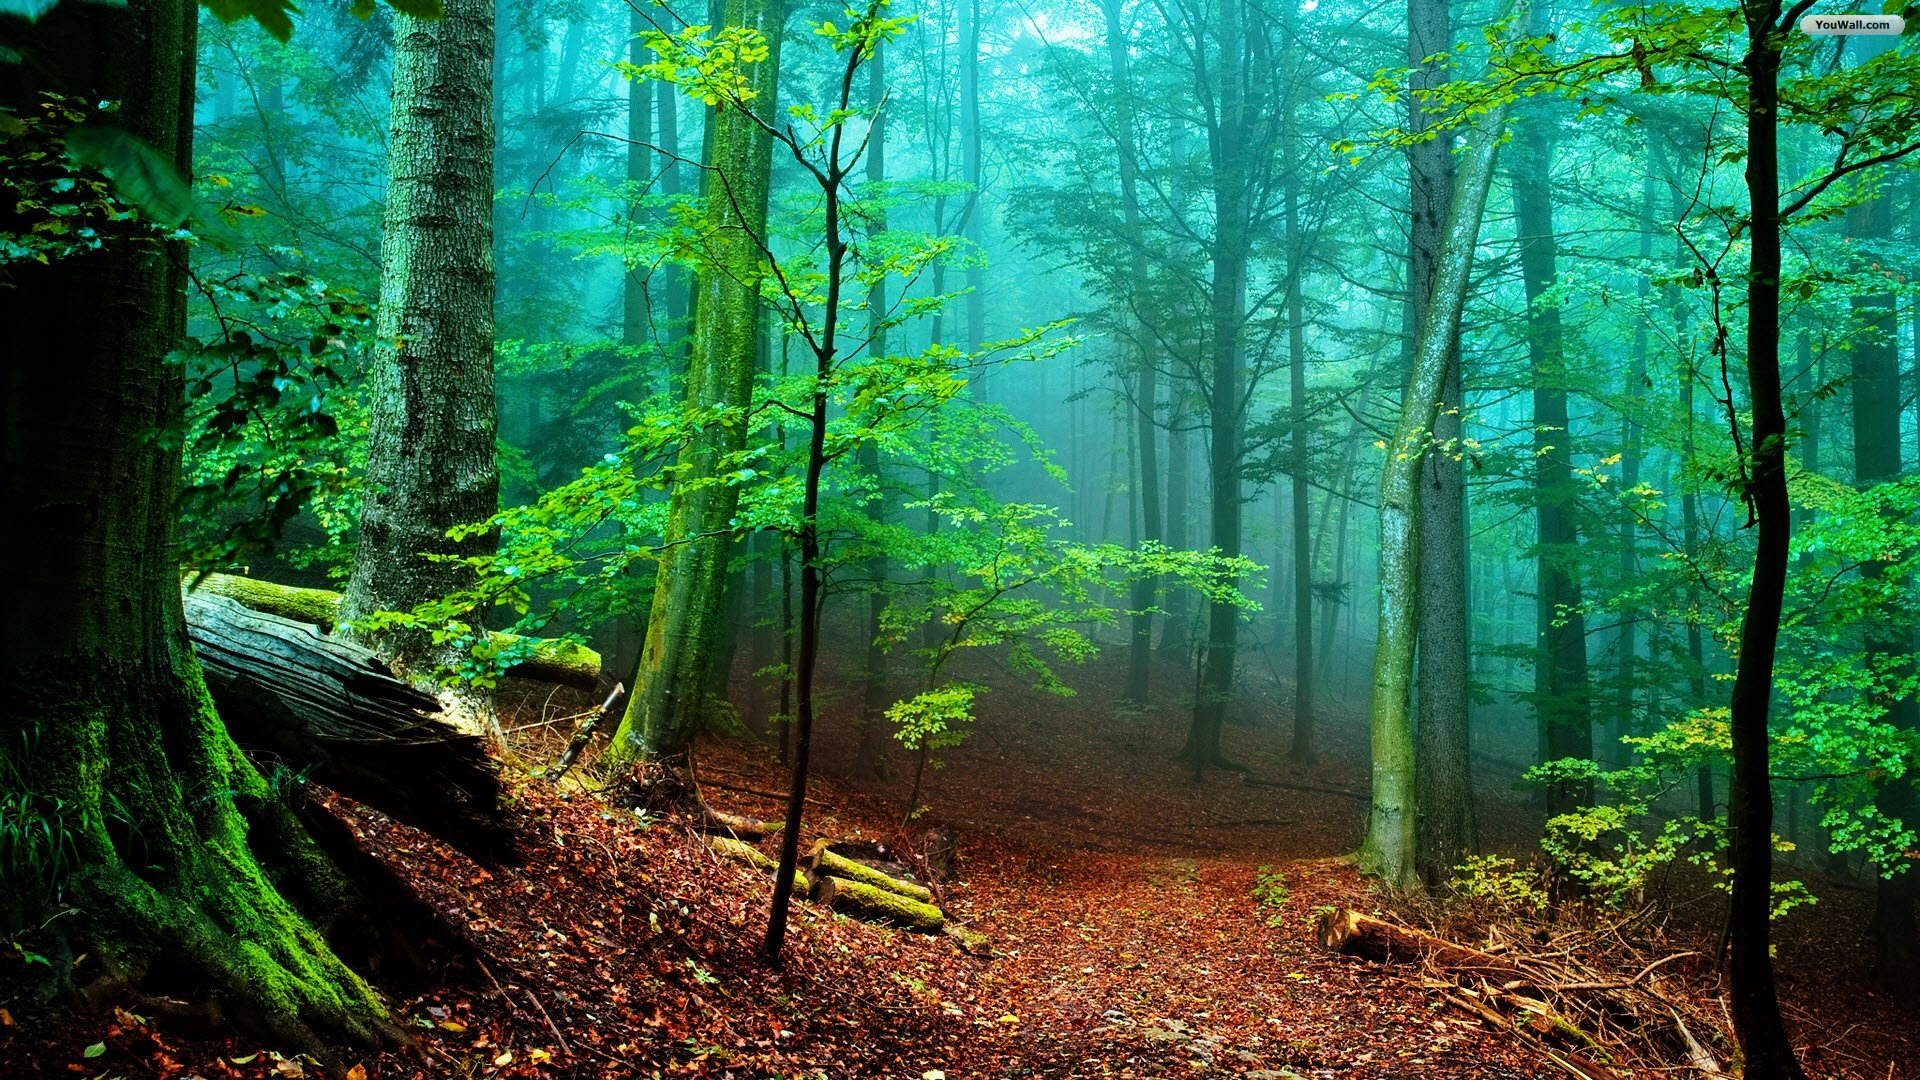 Forest Backgrounds HD Free Download